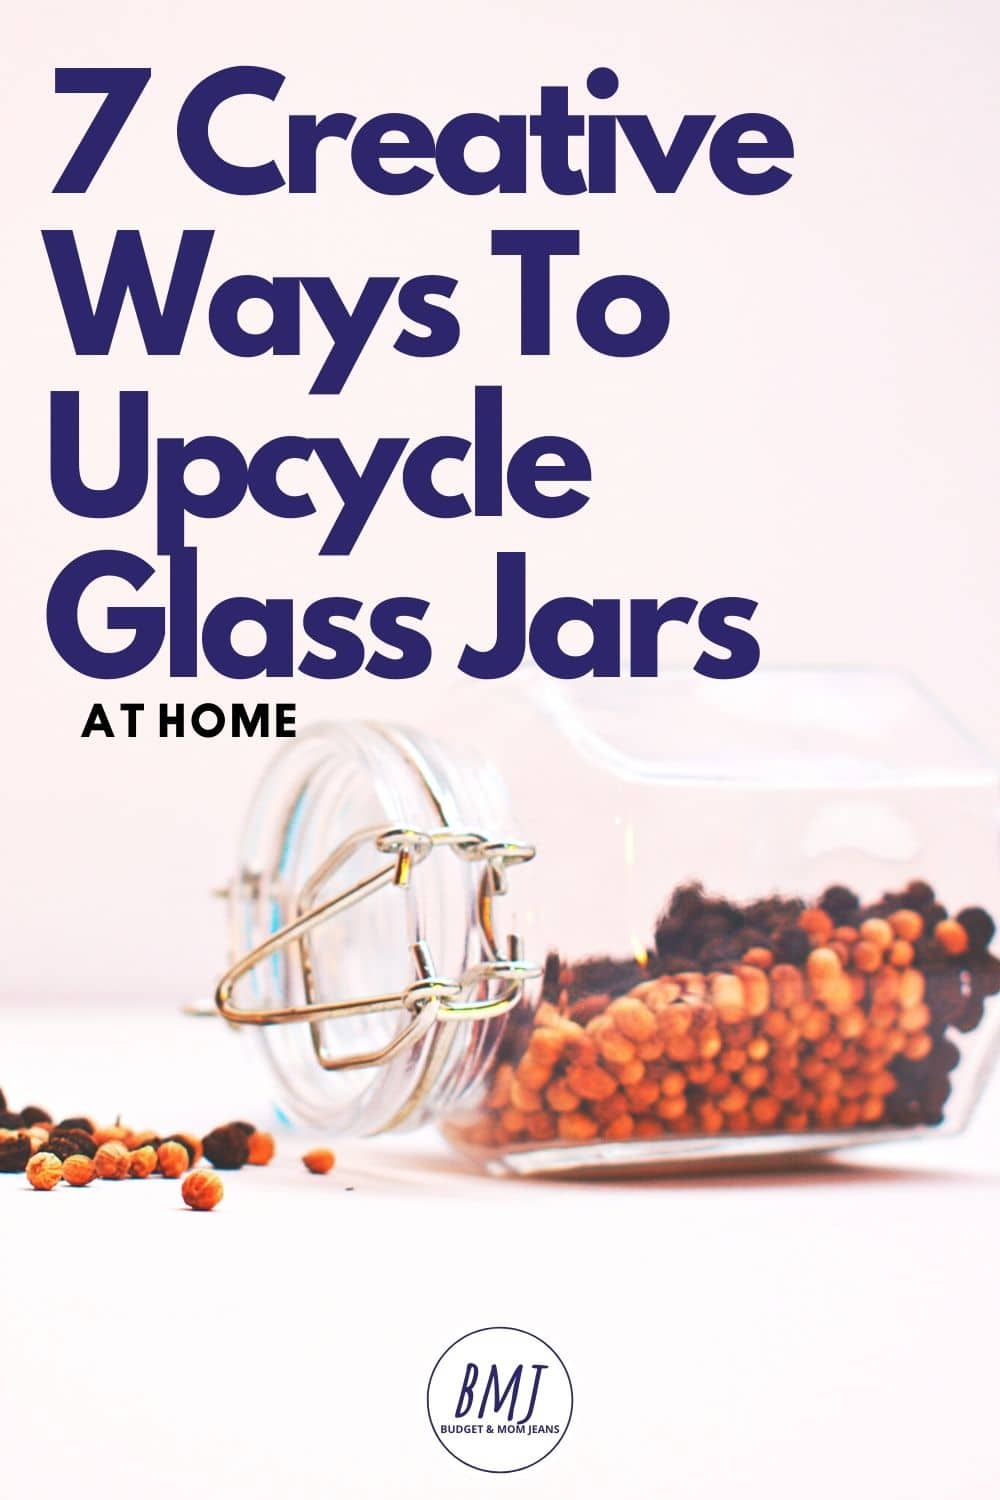 7 Creative Ways To Reuse Glass Jars At Home